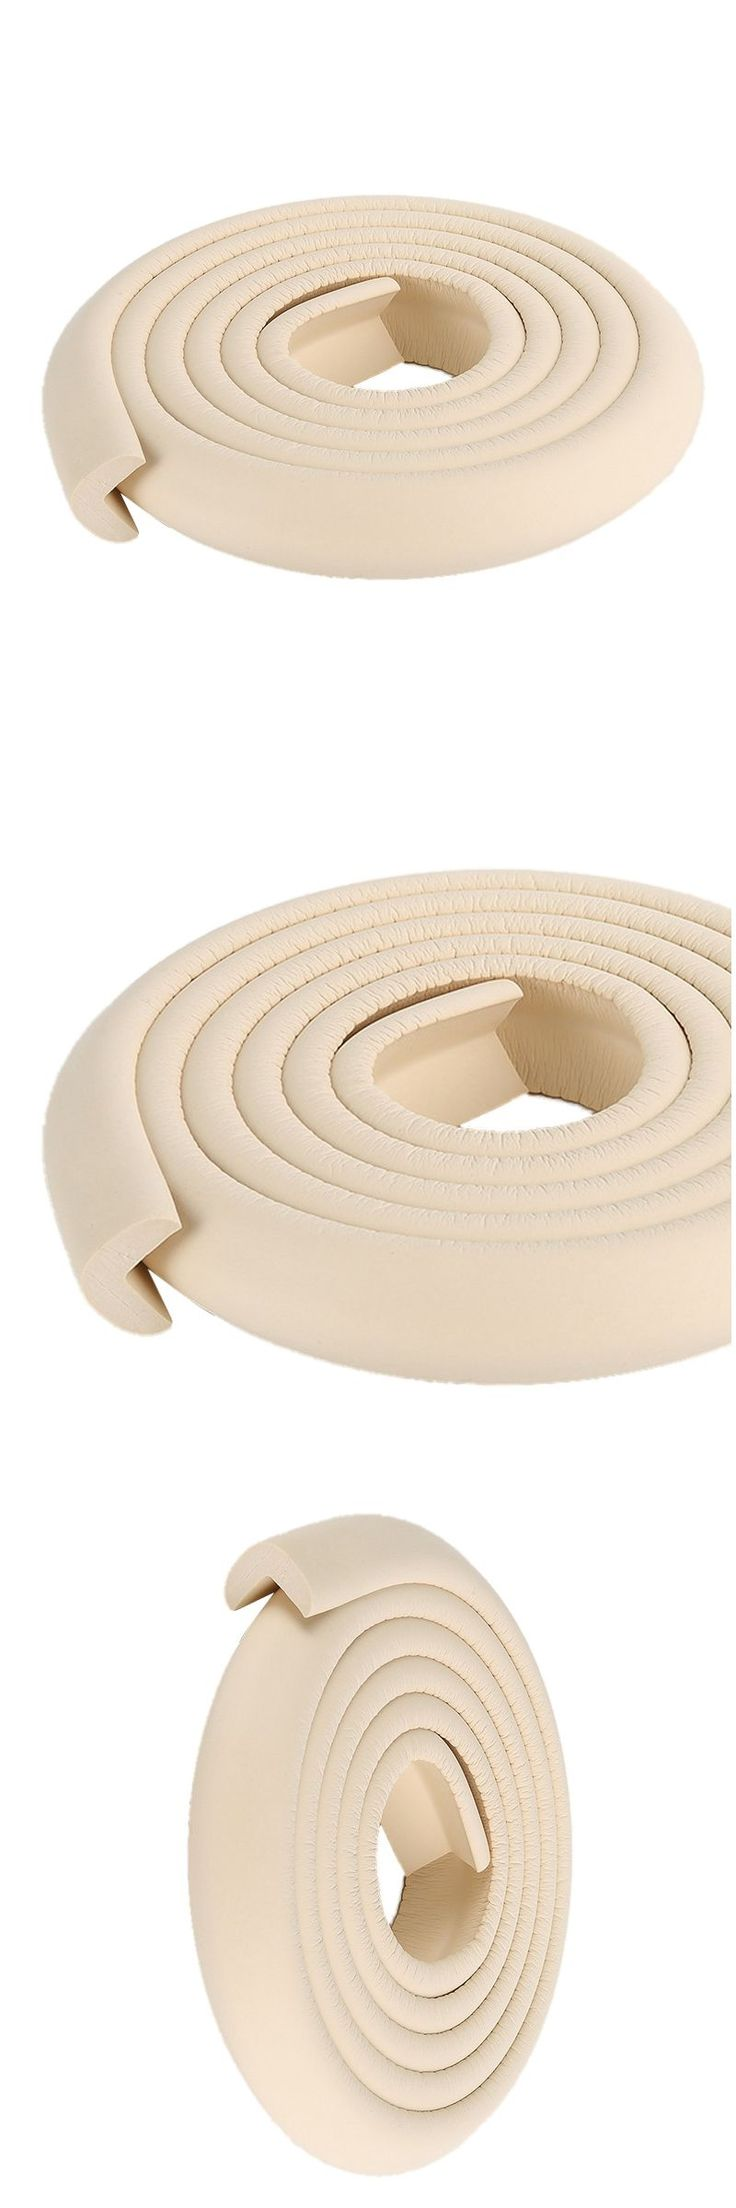 2M Children Protection Table Guard Strip Baby Safety Products Glass Edge Furniture Horror Crash Bar Corner  (beige)